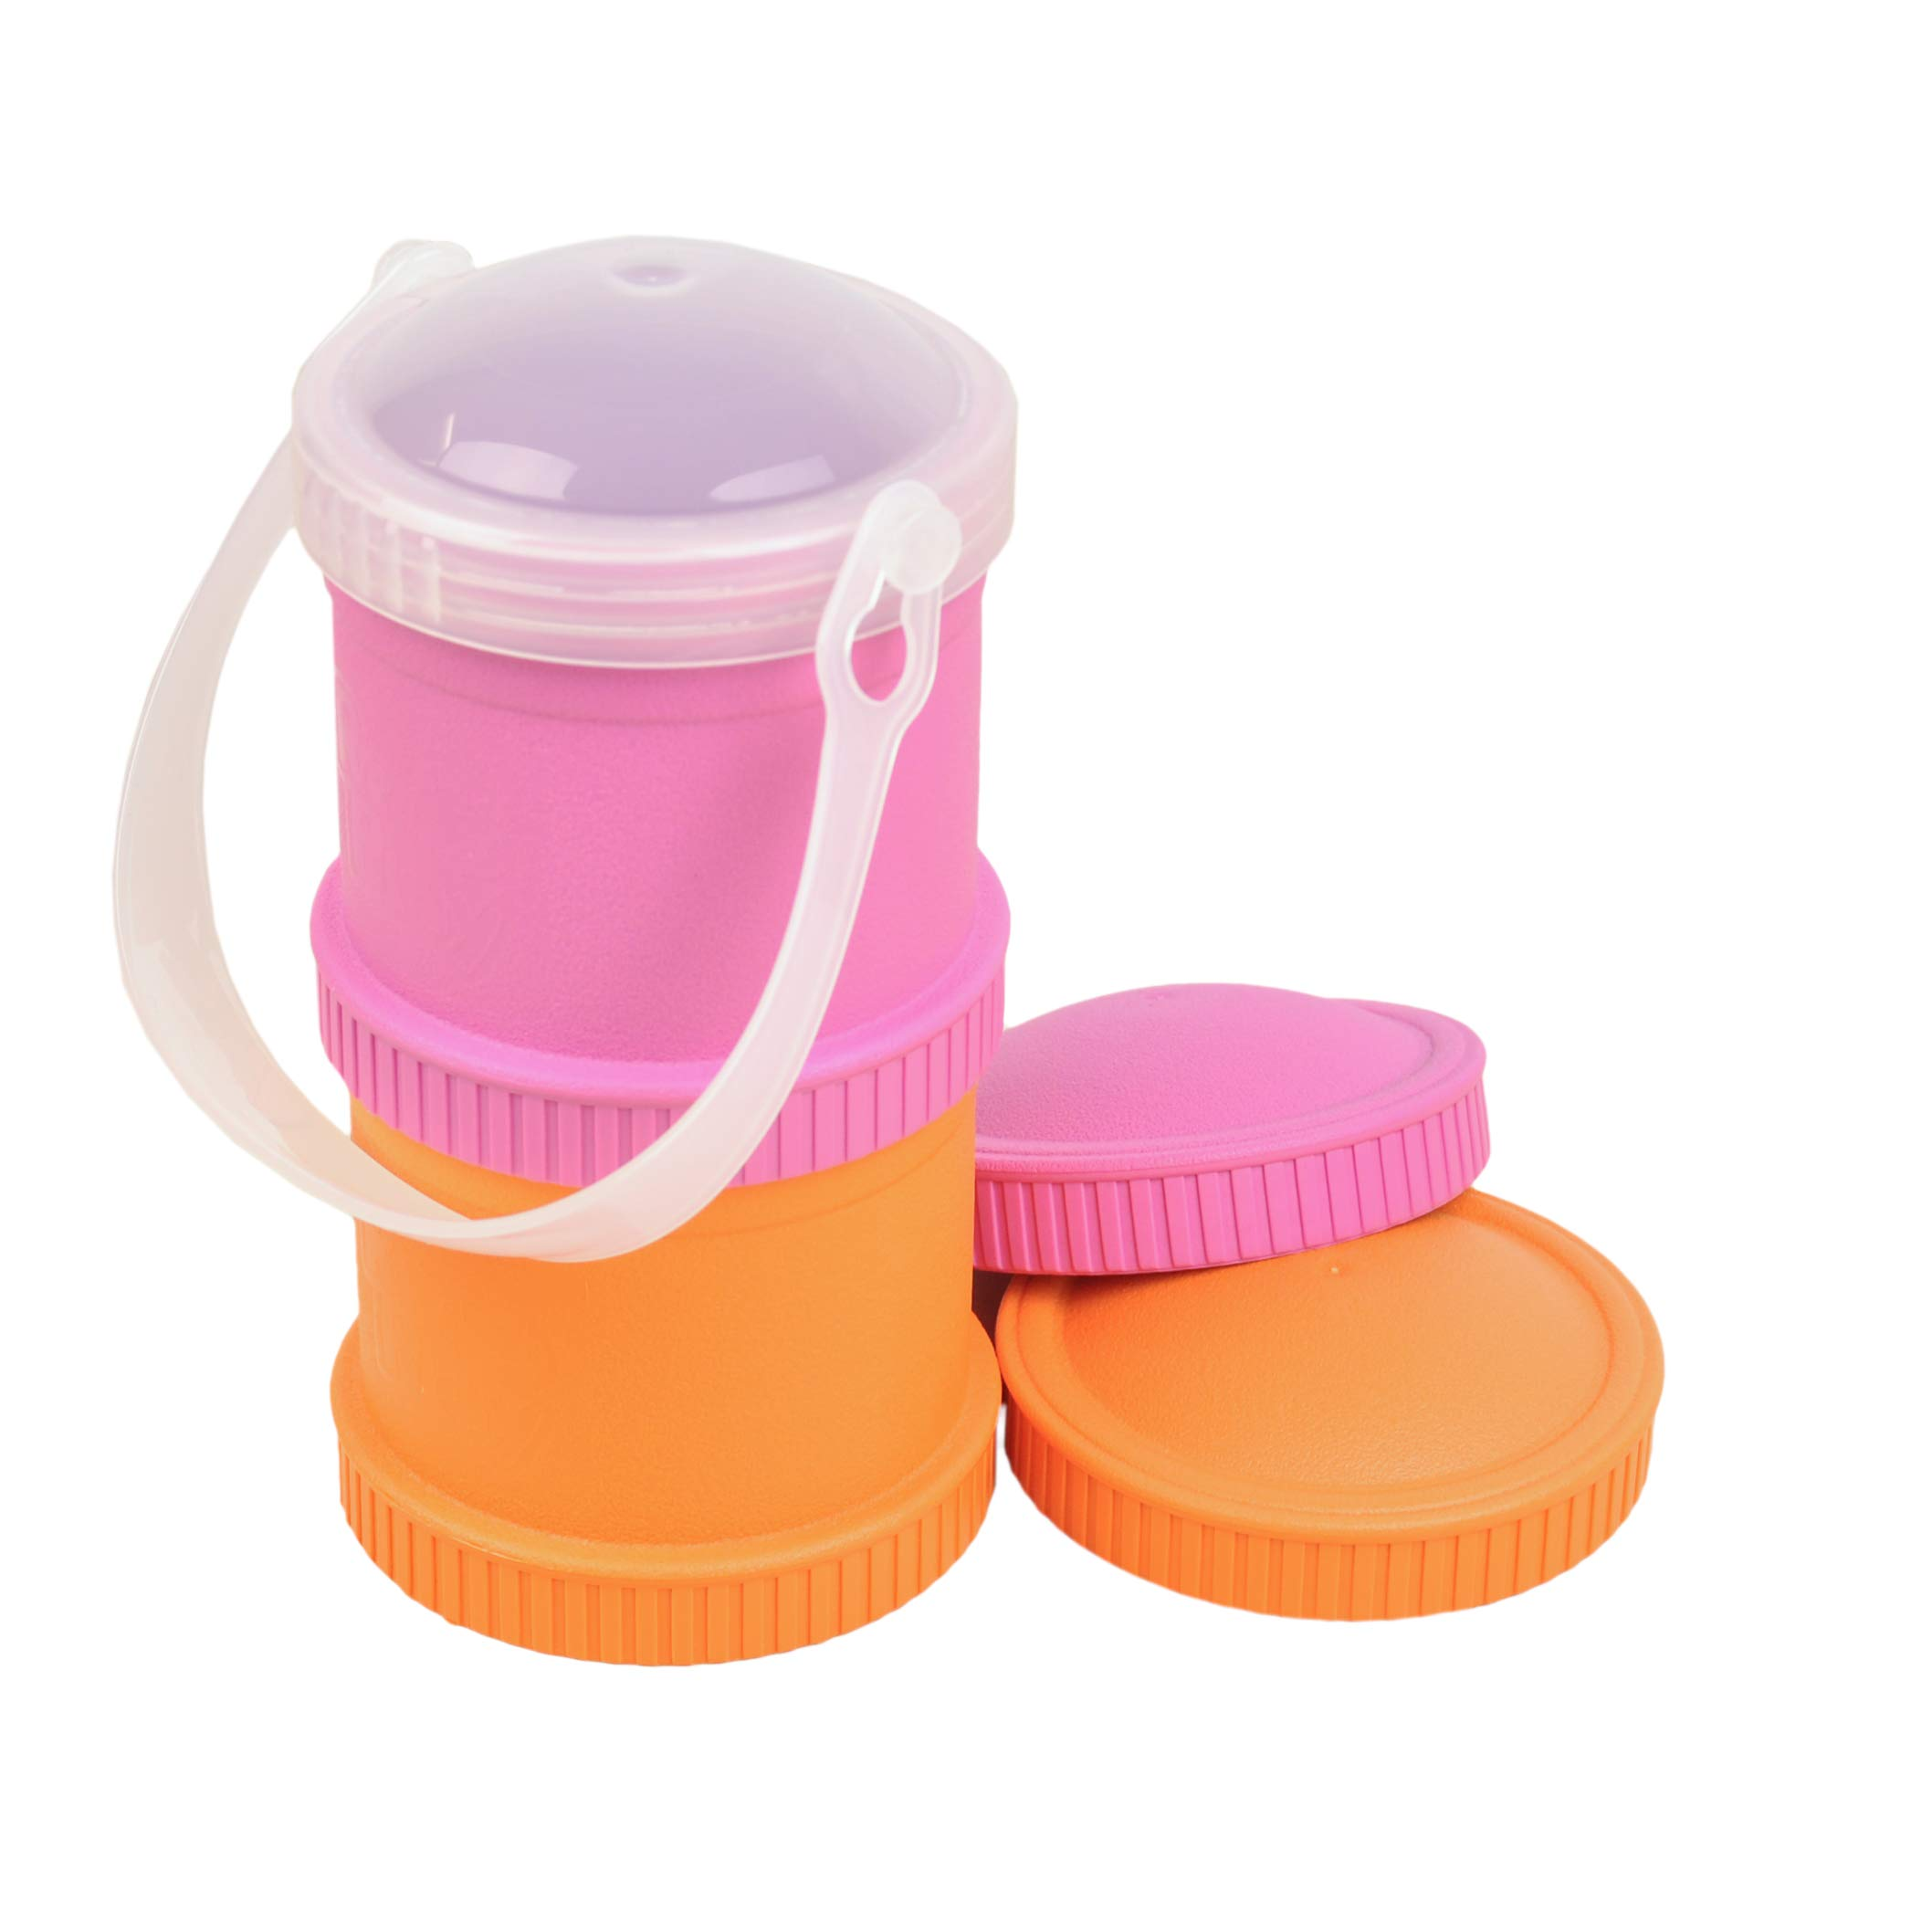 Re-play Snack Stack Cup 2pk With 1 Lid Food Container Bpa Free Recycled Plastics Feeding Baby